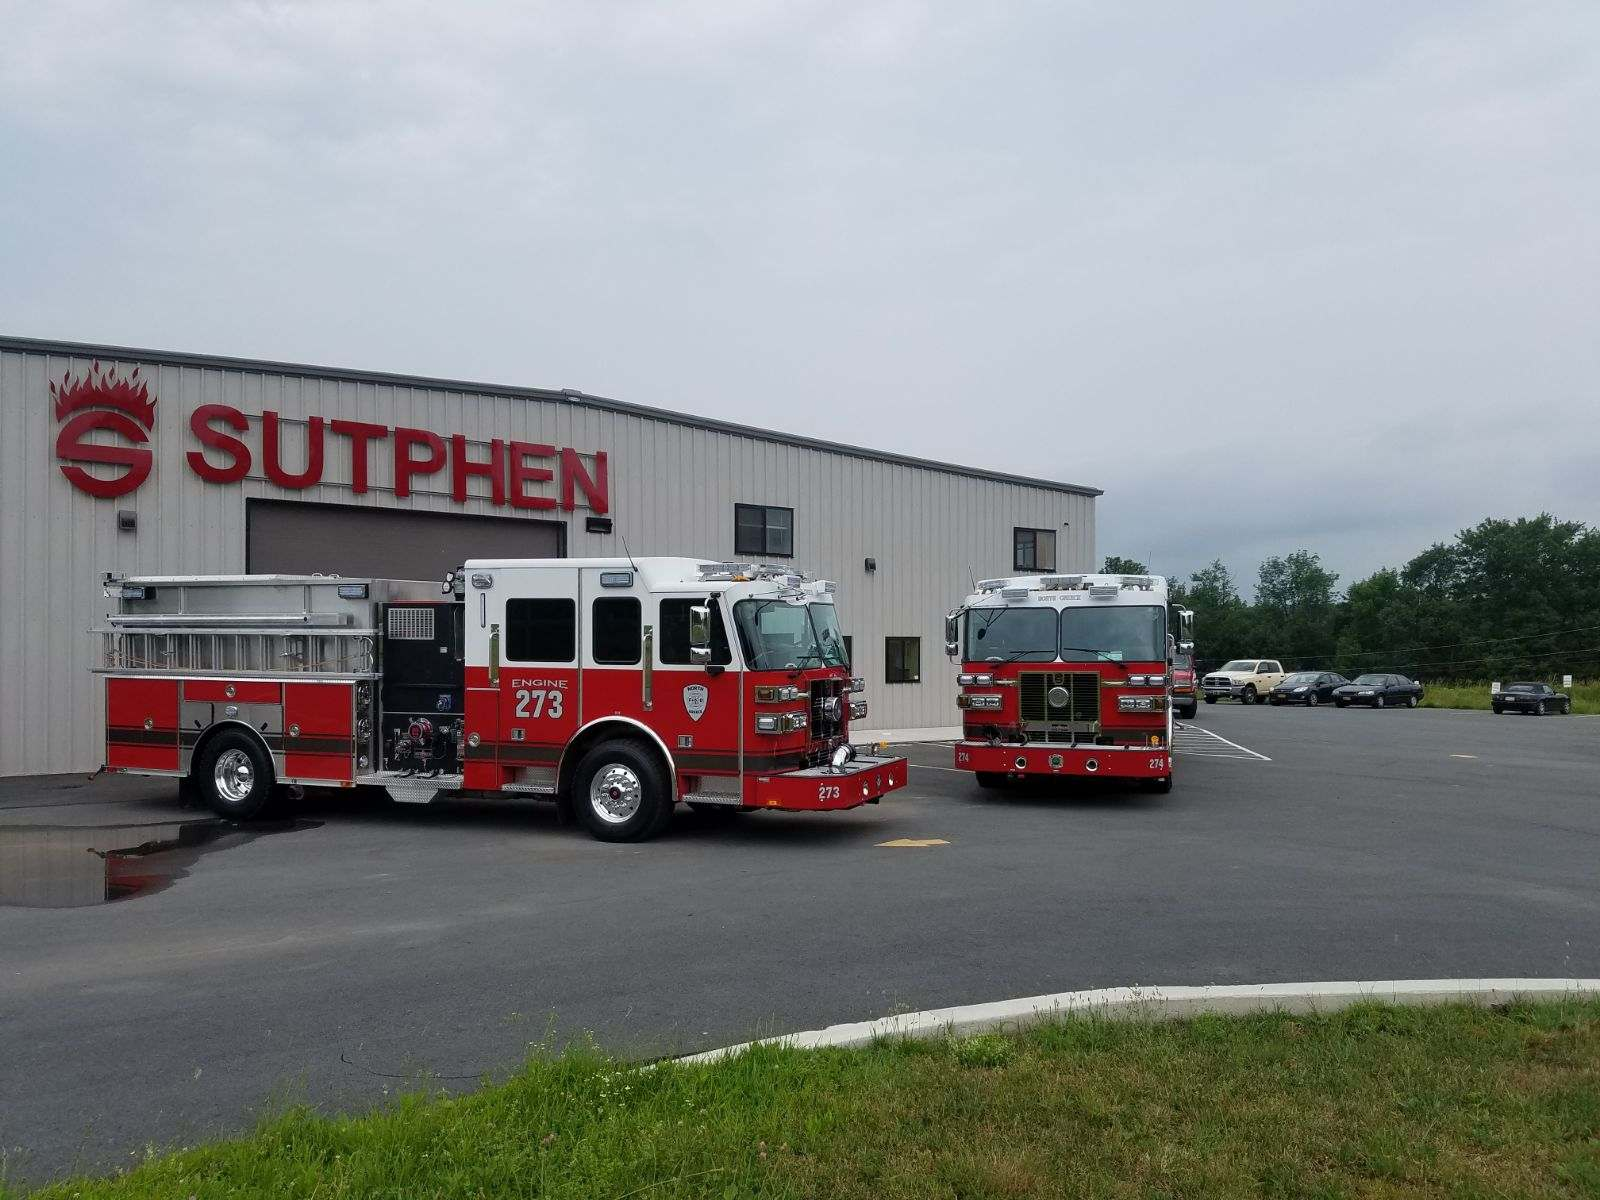 North Greece Fire District, NY